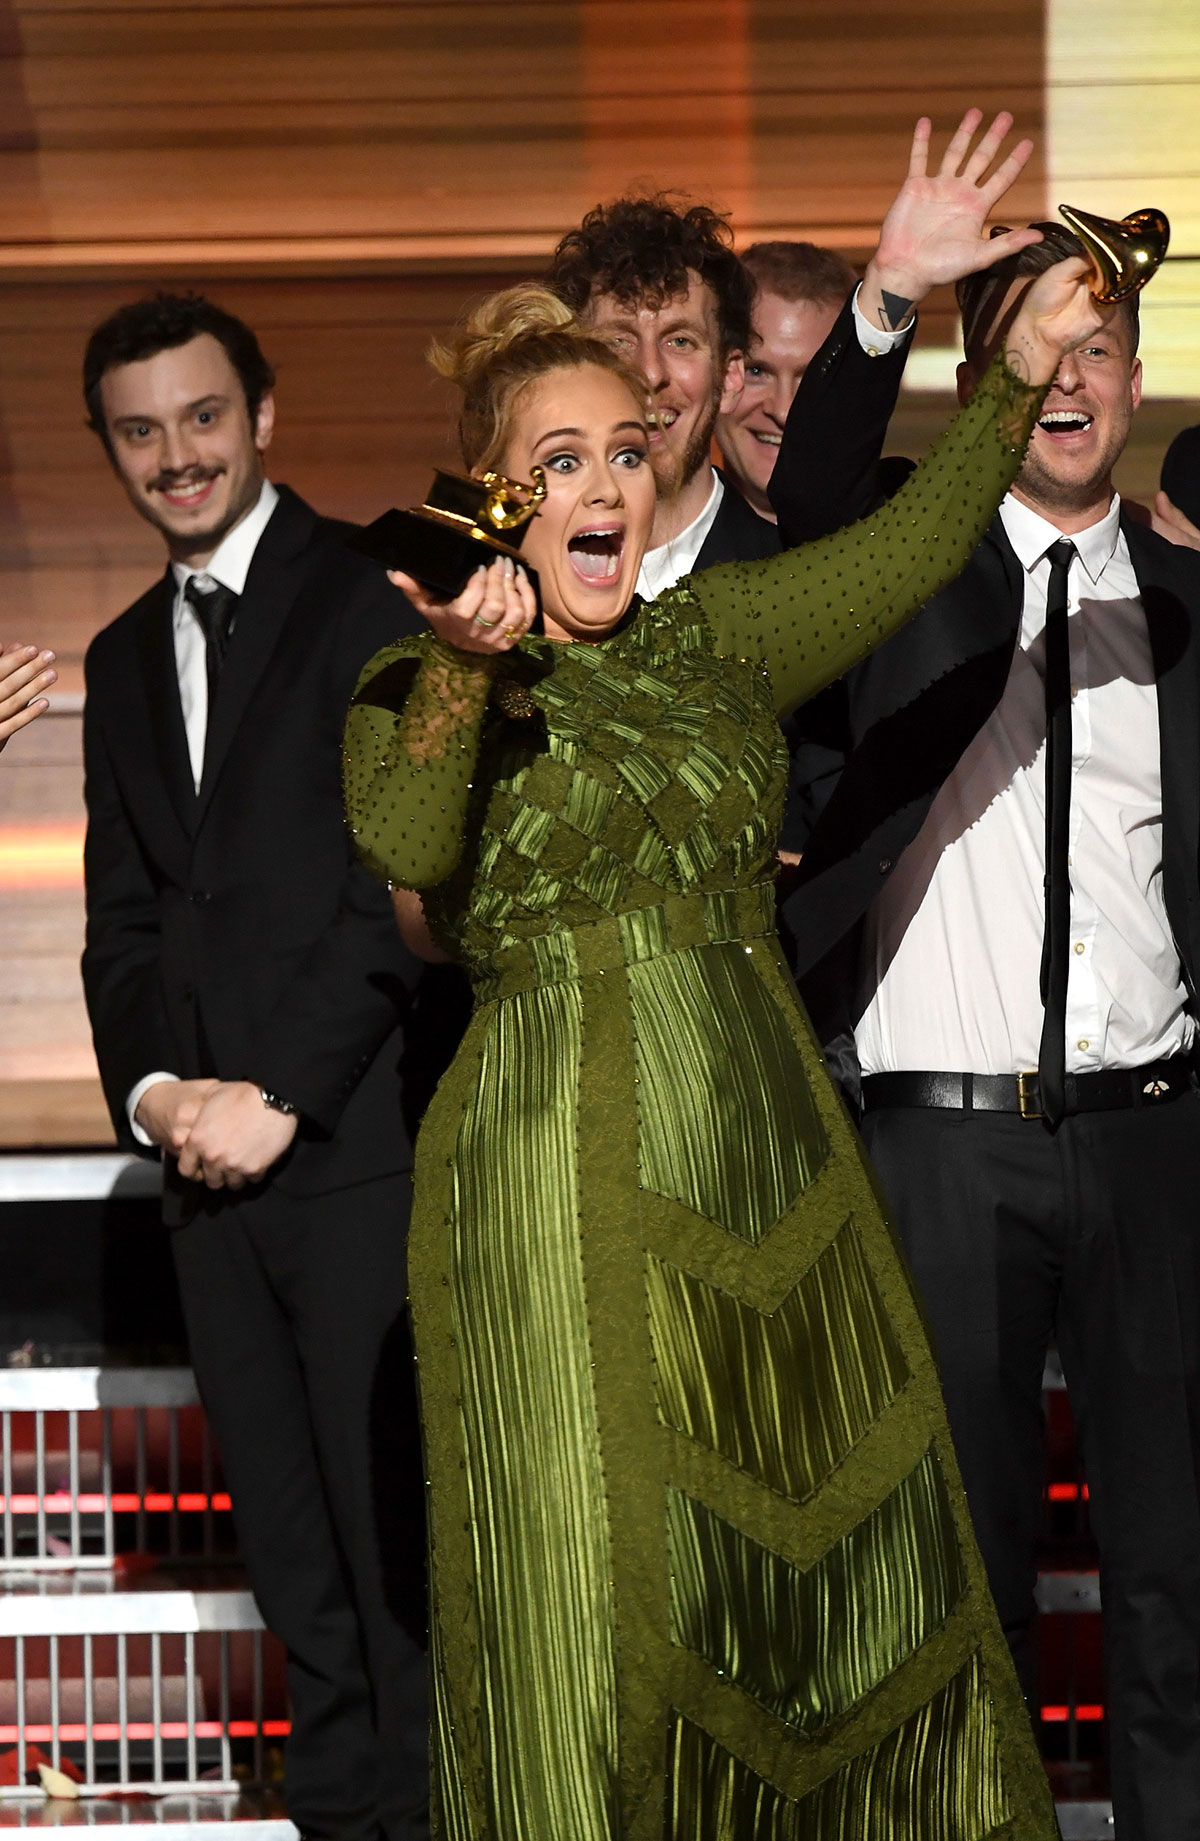 Adele breaks her Grammy in half at the 2017 awards show.